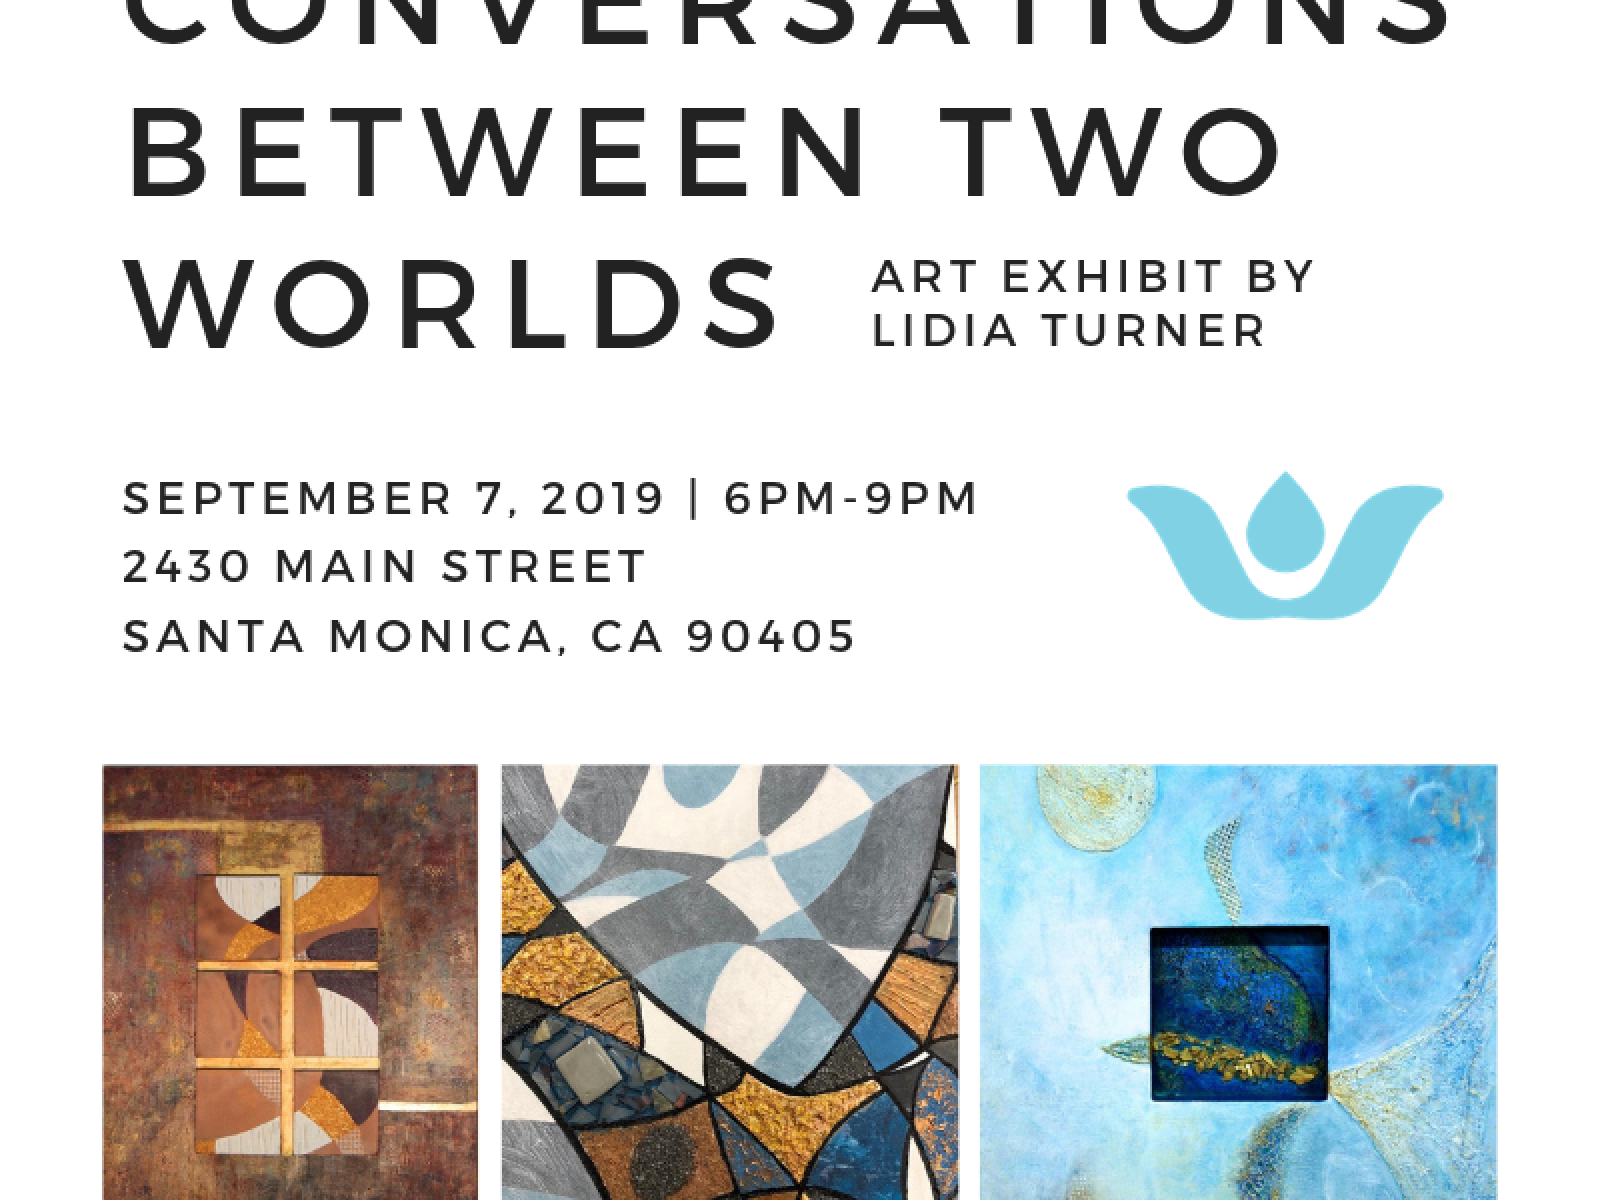 Flyer and Event Title Conversations Between Two Worlds